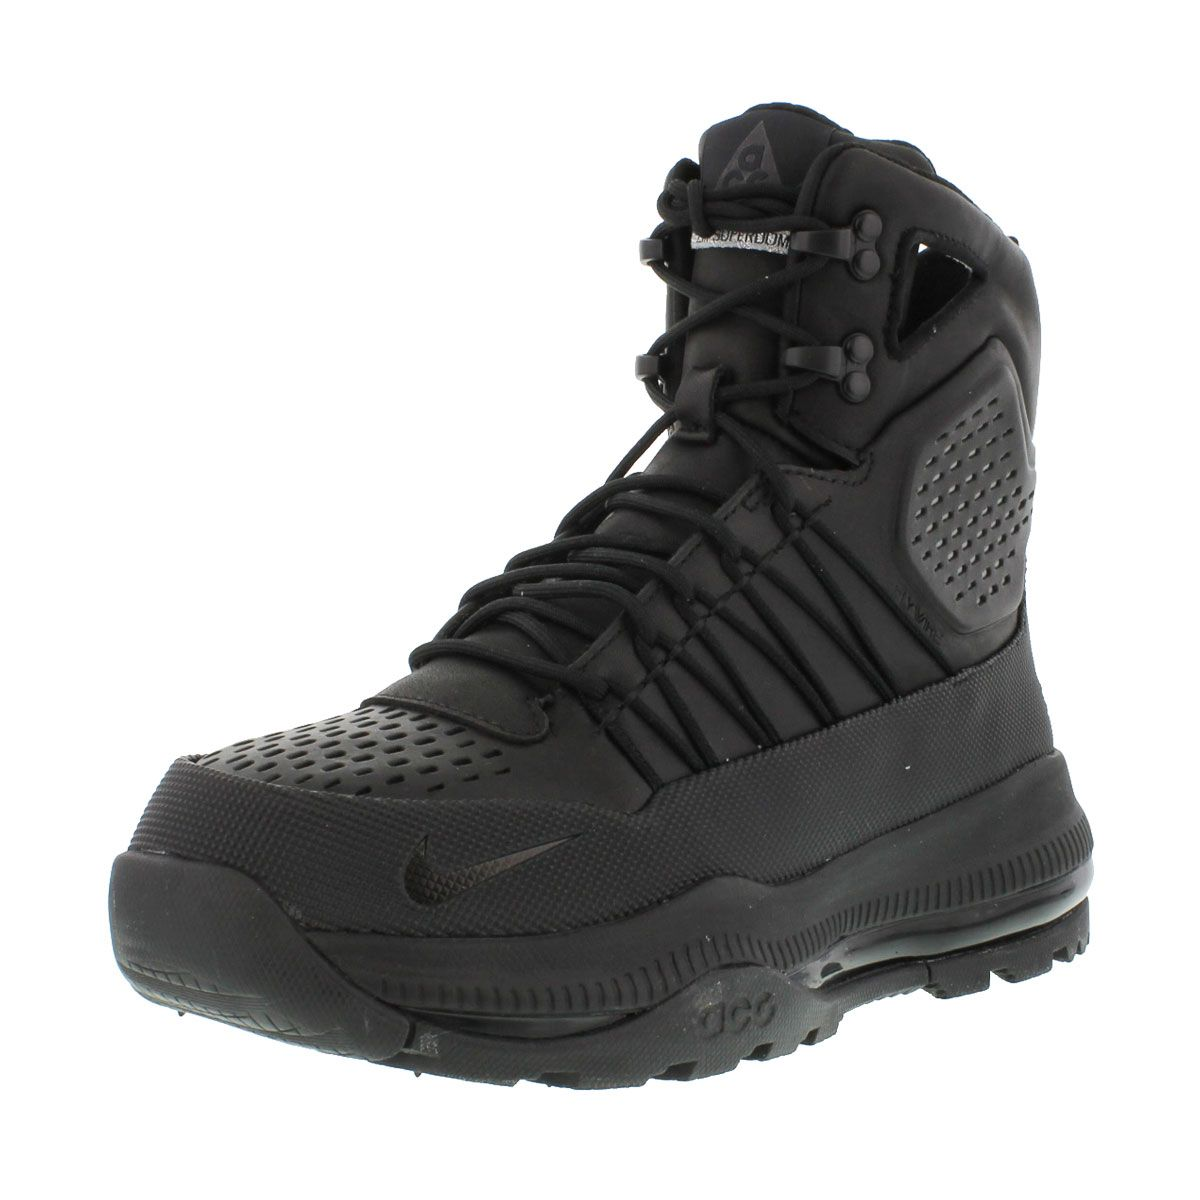 Nike Acg Boots Nike in store only